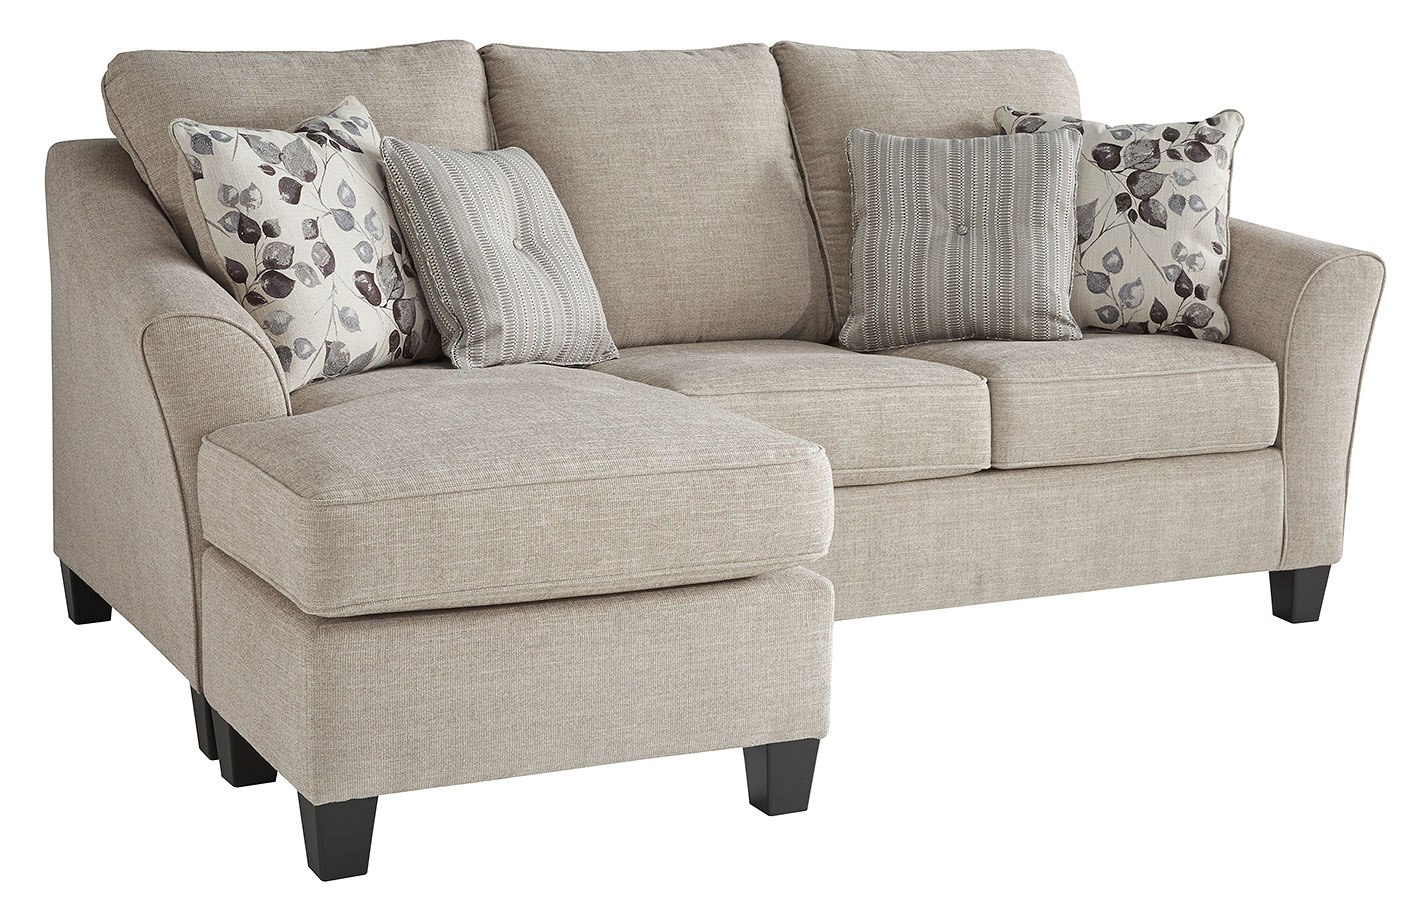 Sofa Queen Abney Driftwood Sofa Chaise Queen Sleeper